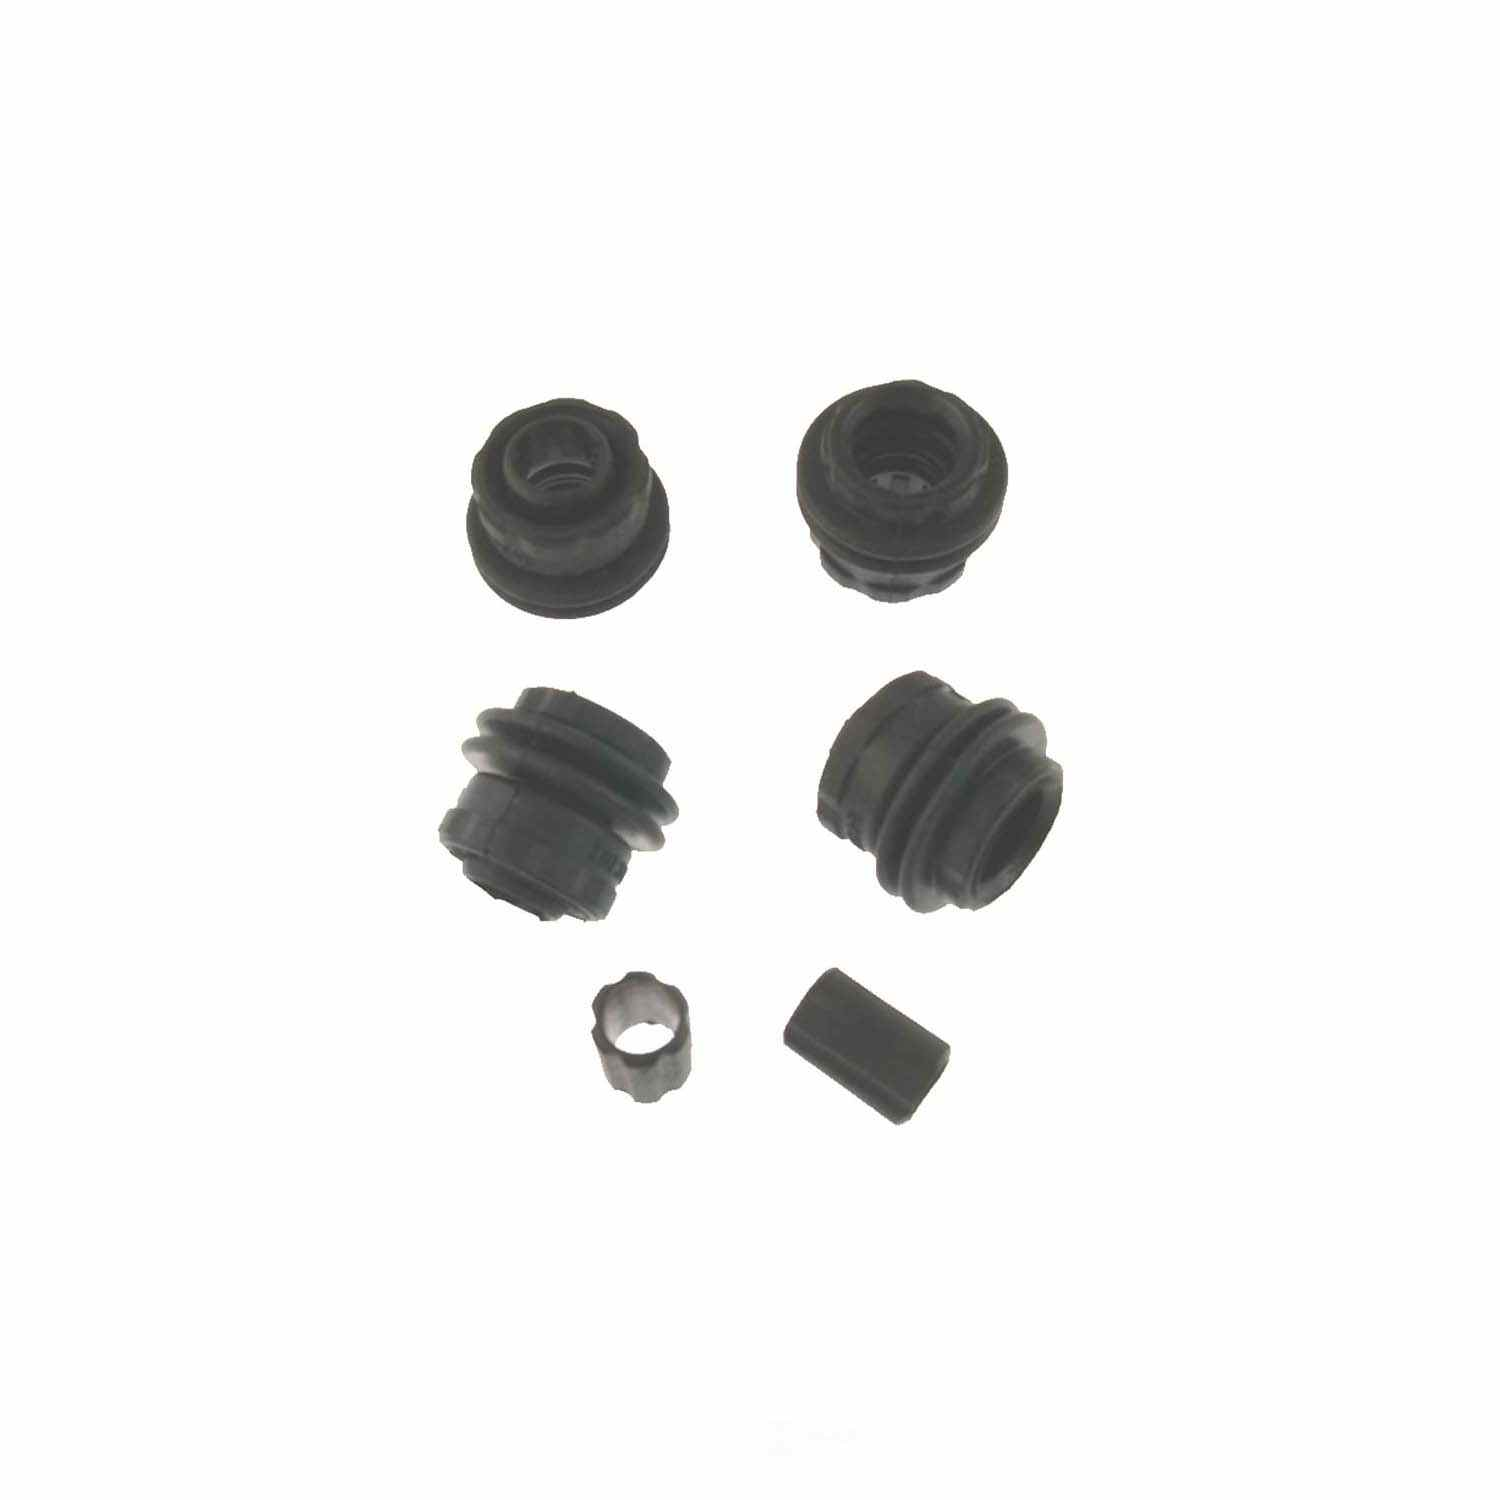 CARLSON QUALITY BRAKE PARTS - Disc Brake Caliper Guide Pin Boot Kit (Rear) - CRL 16193